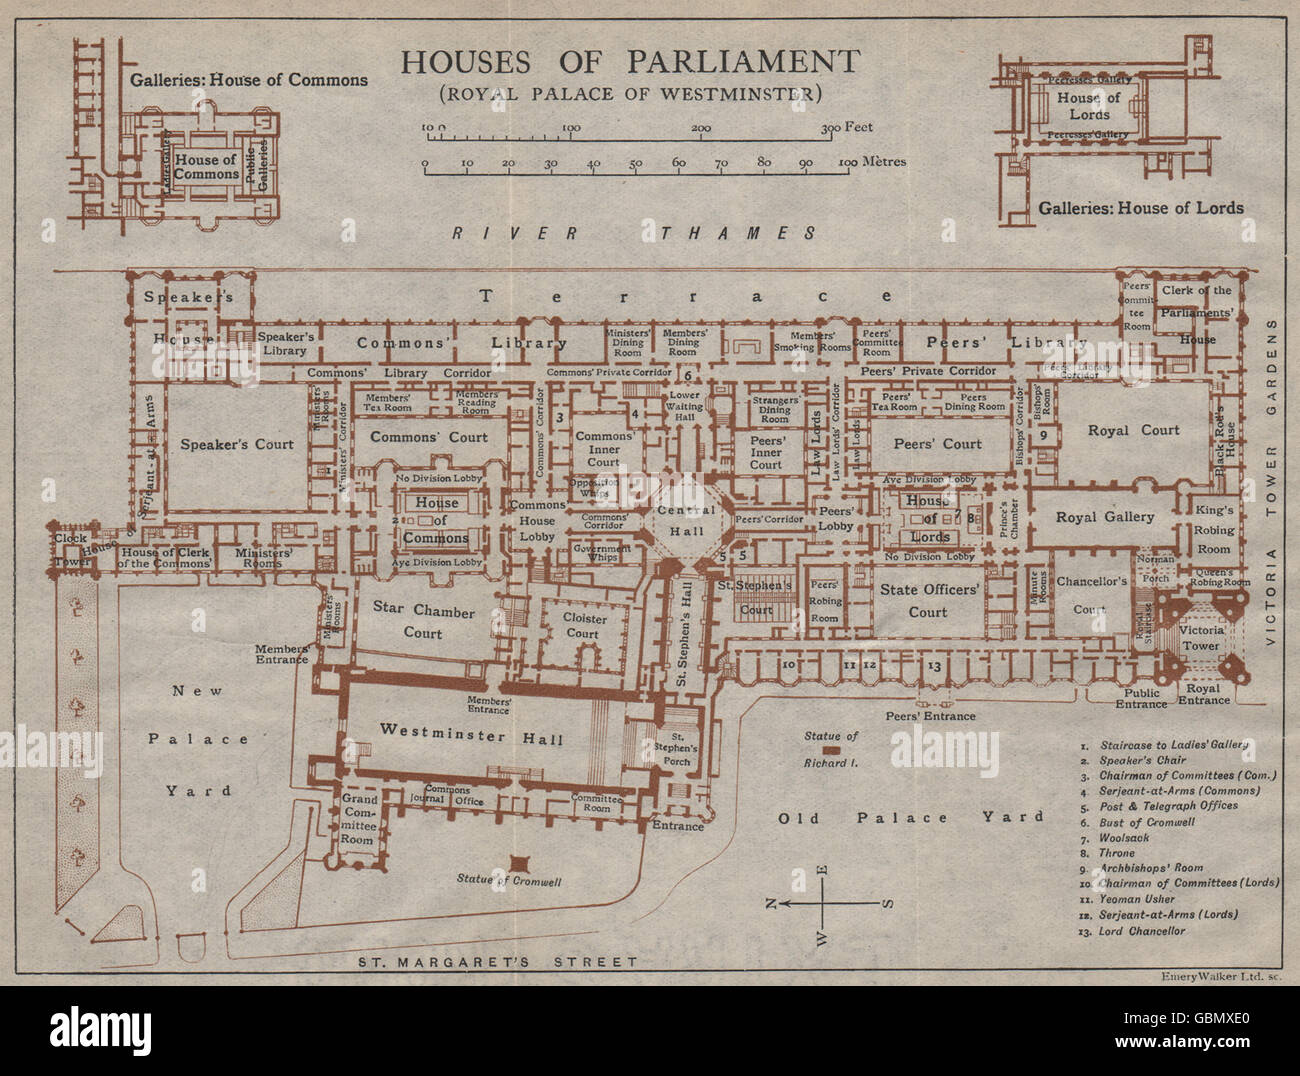 Houses Of Parliament Map HOUSES OF PARLIAMENT (PALACE OF WESTMINSTER) . Vintage map plan  Houses Of Parliament Map